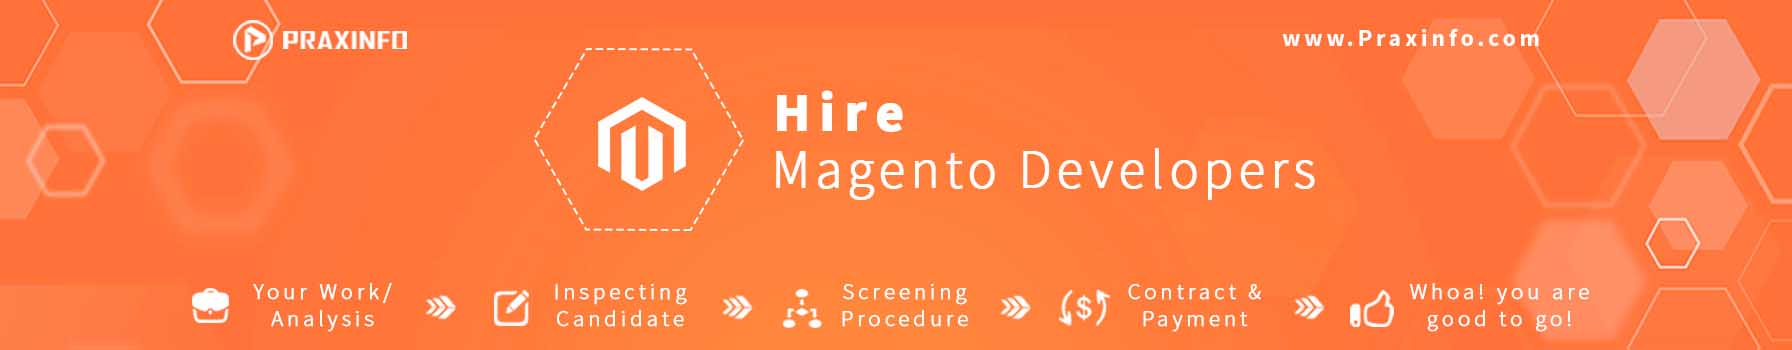 hire-magento-developer-banner.jpg